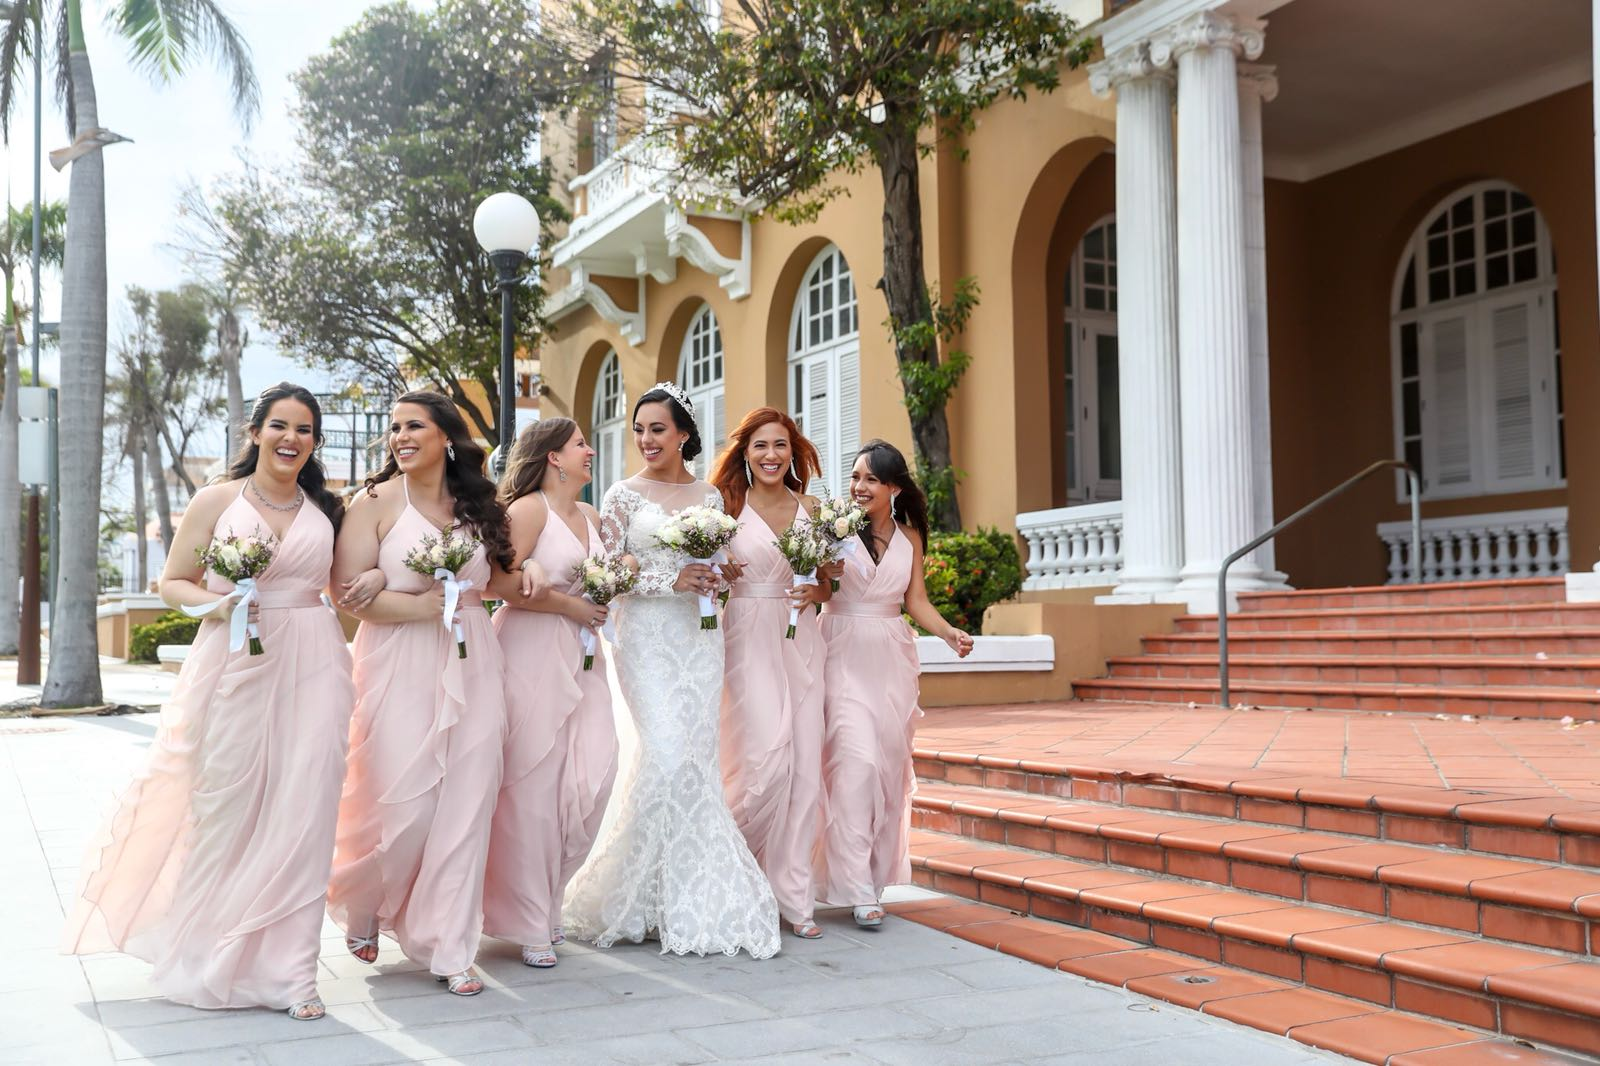 Eliana and her bridesmaids